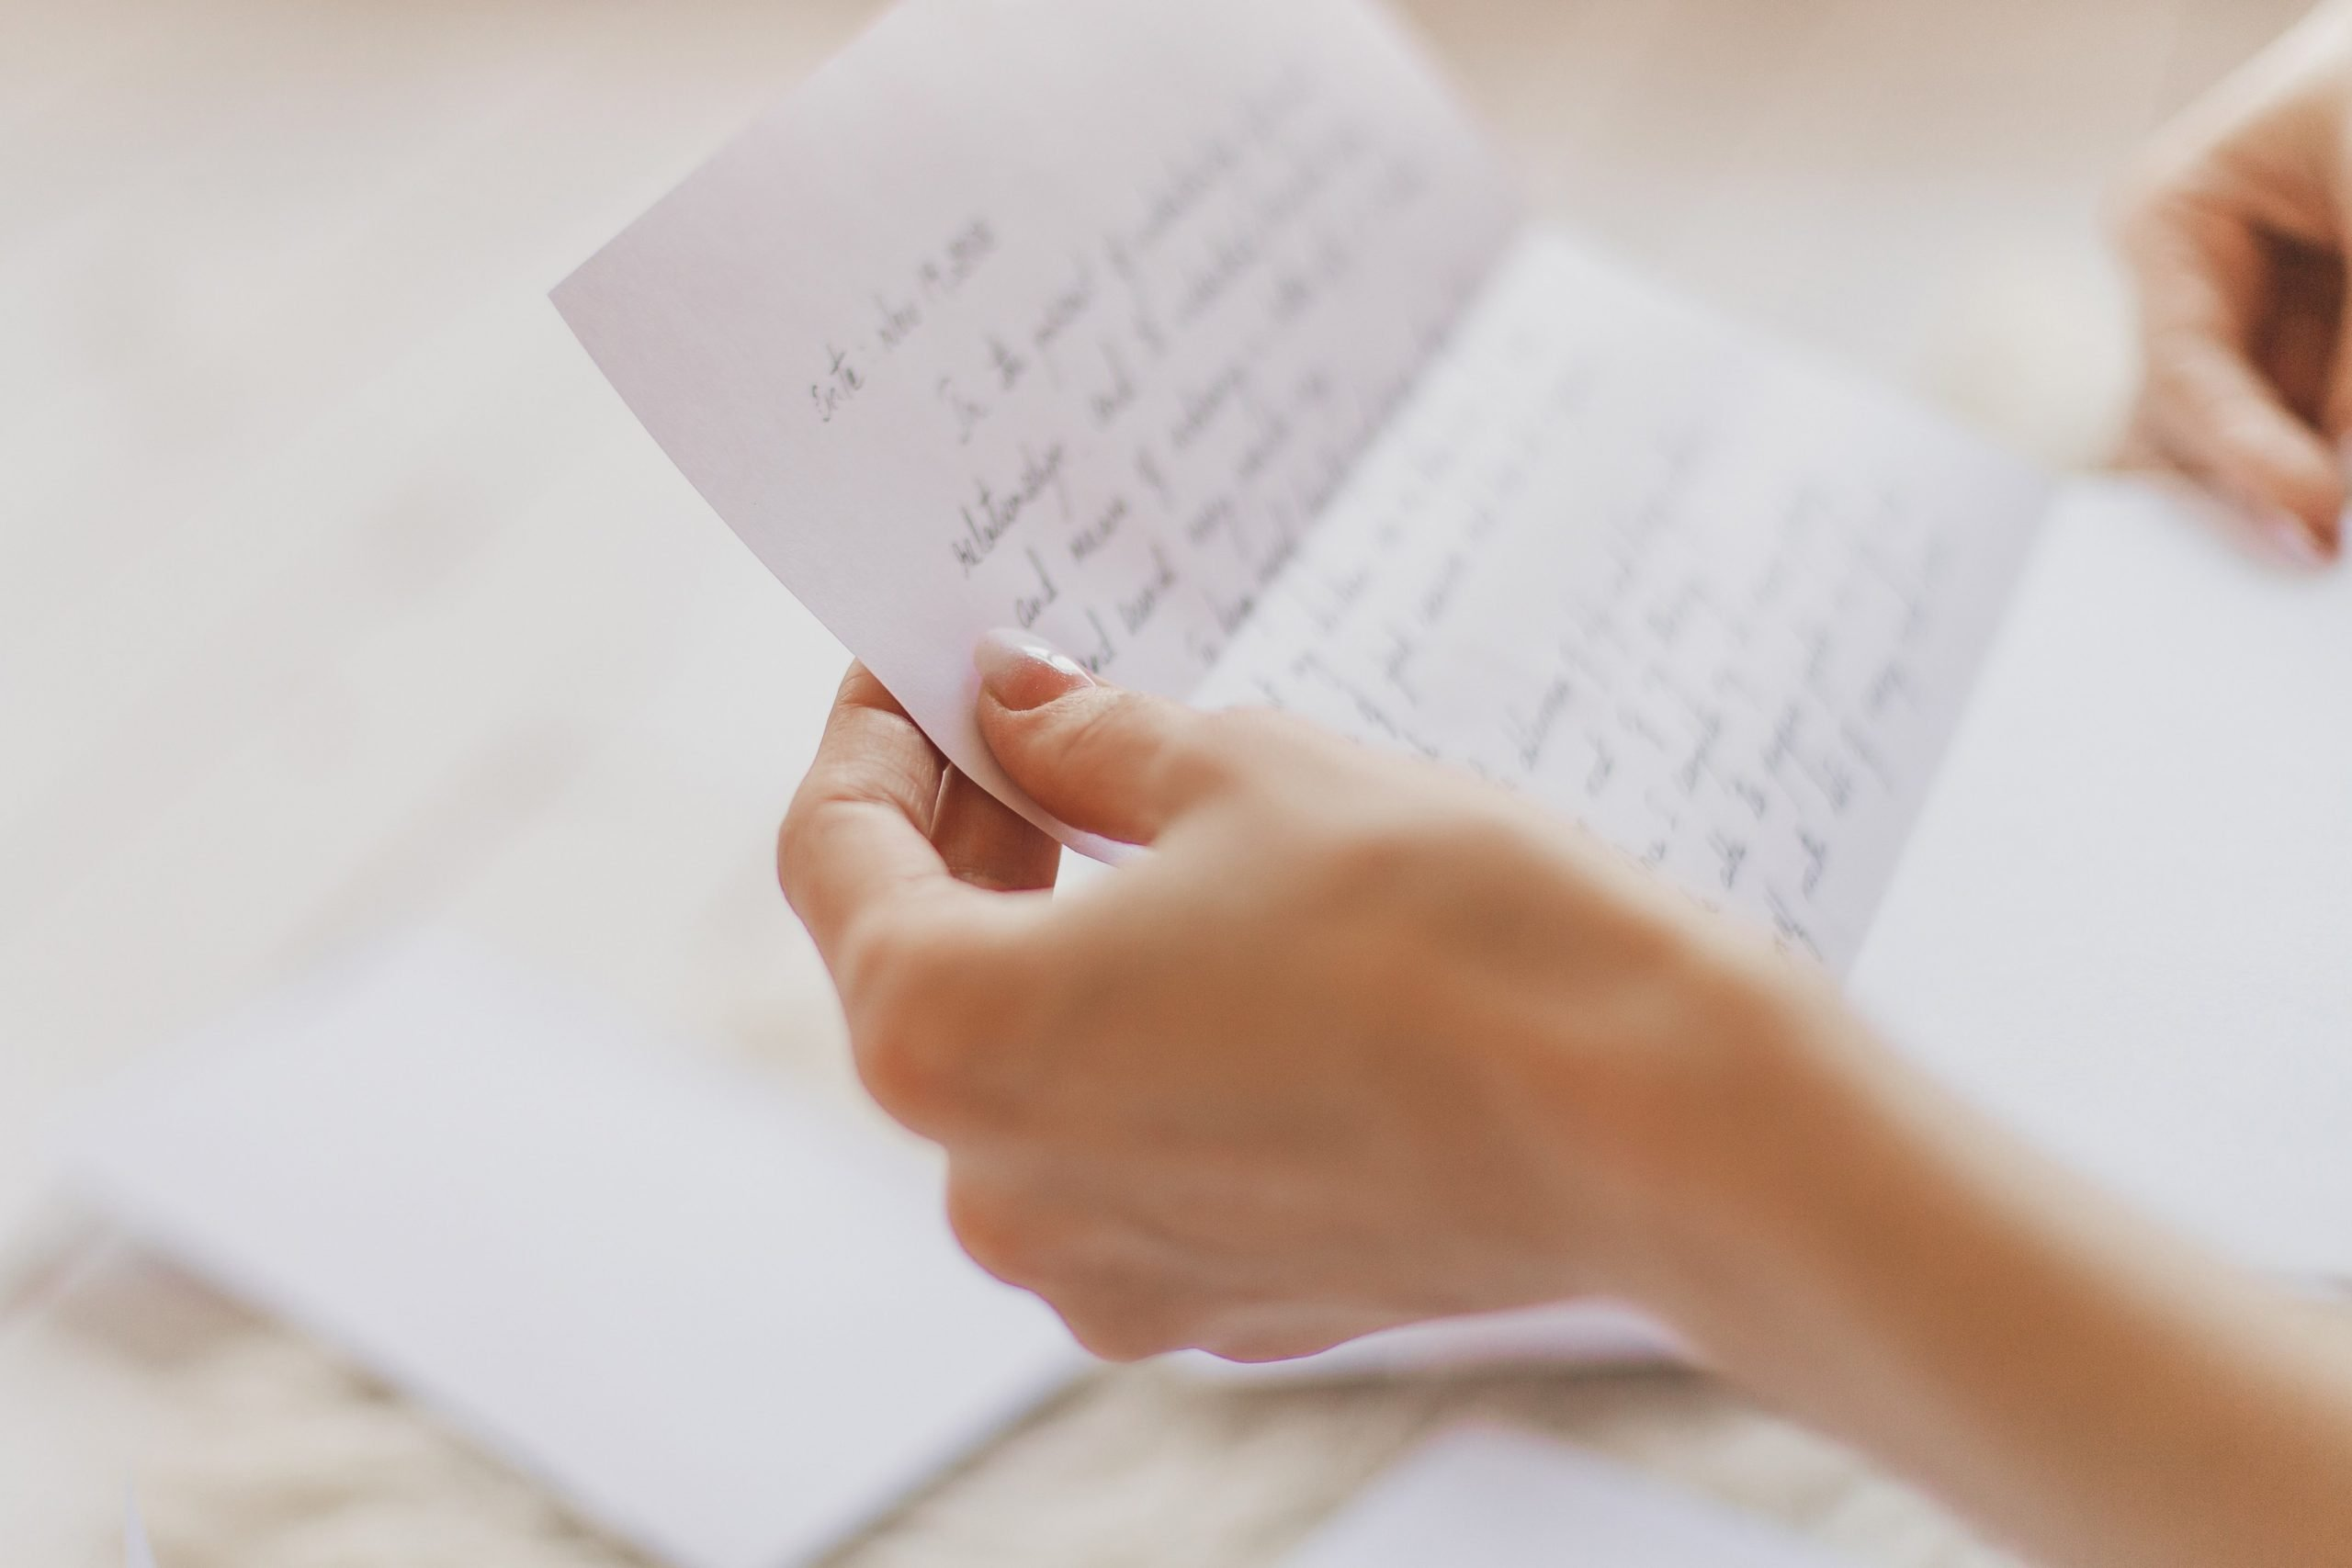 someone reading a handwritten letter